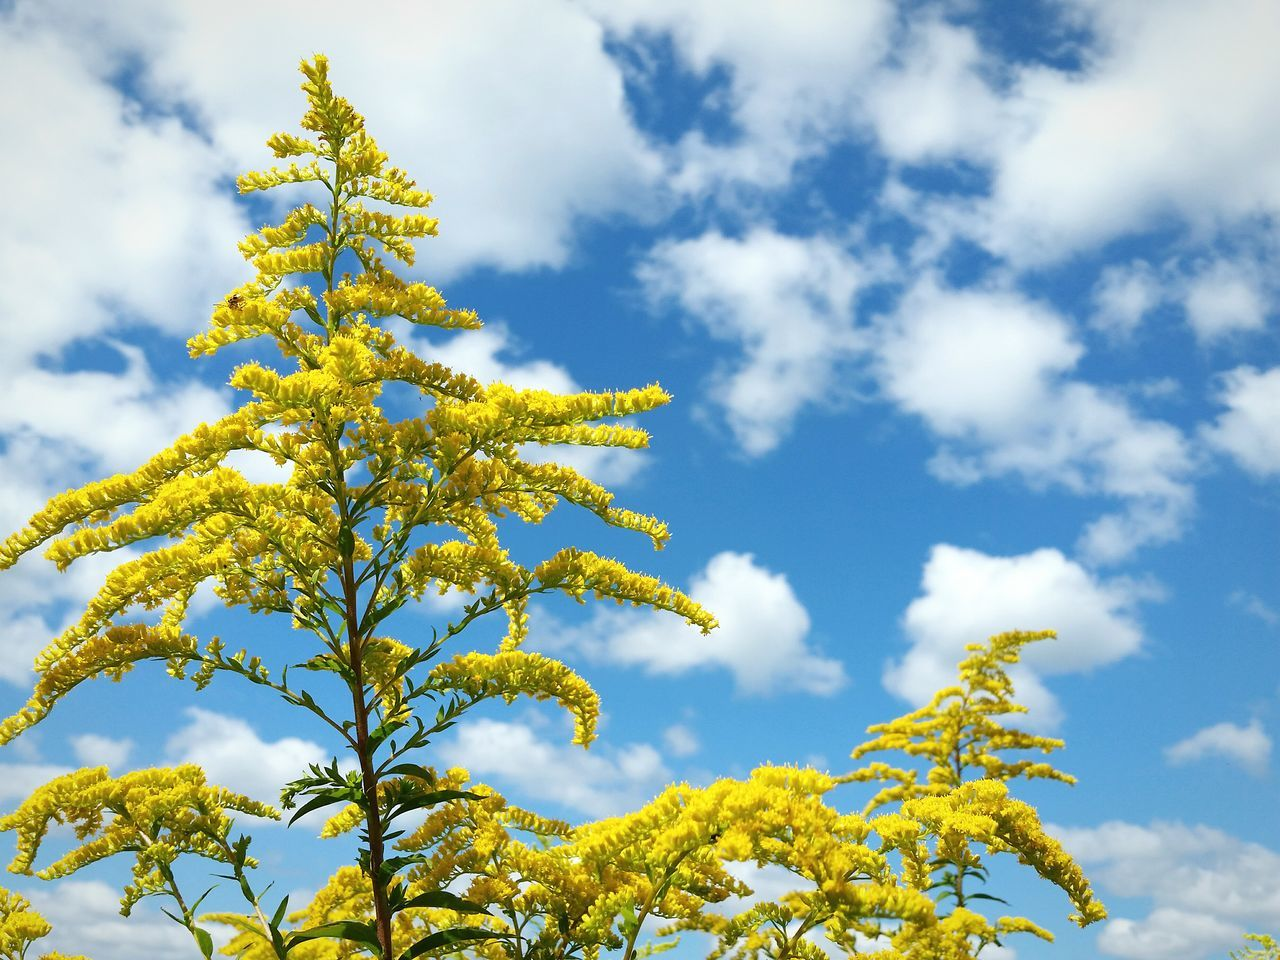 Good morning Low Angle View Sky Yellow Flower Goldenrod Cloud - Sky Nature Cloud Scenics Beauty In Nature Majestic Tranquility Day Blue Outdoors No Filter End Of Summer Autumn The EyeEm Collection The Premium Collection Maryland USA